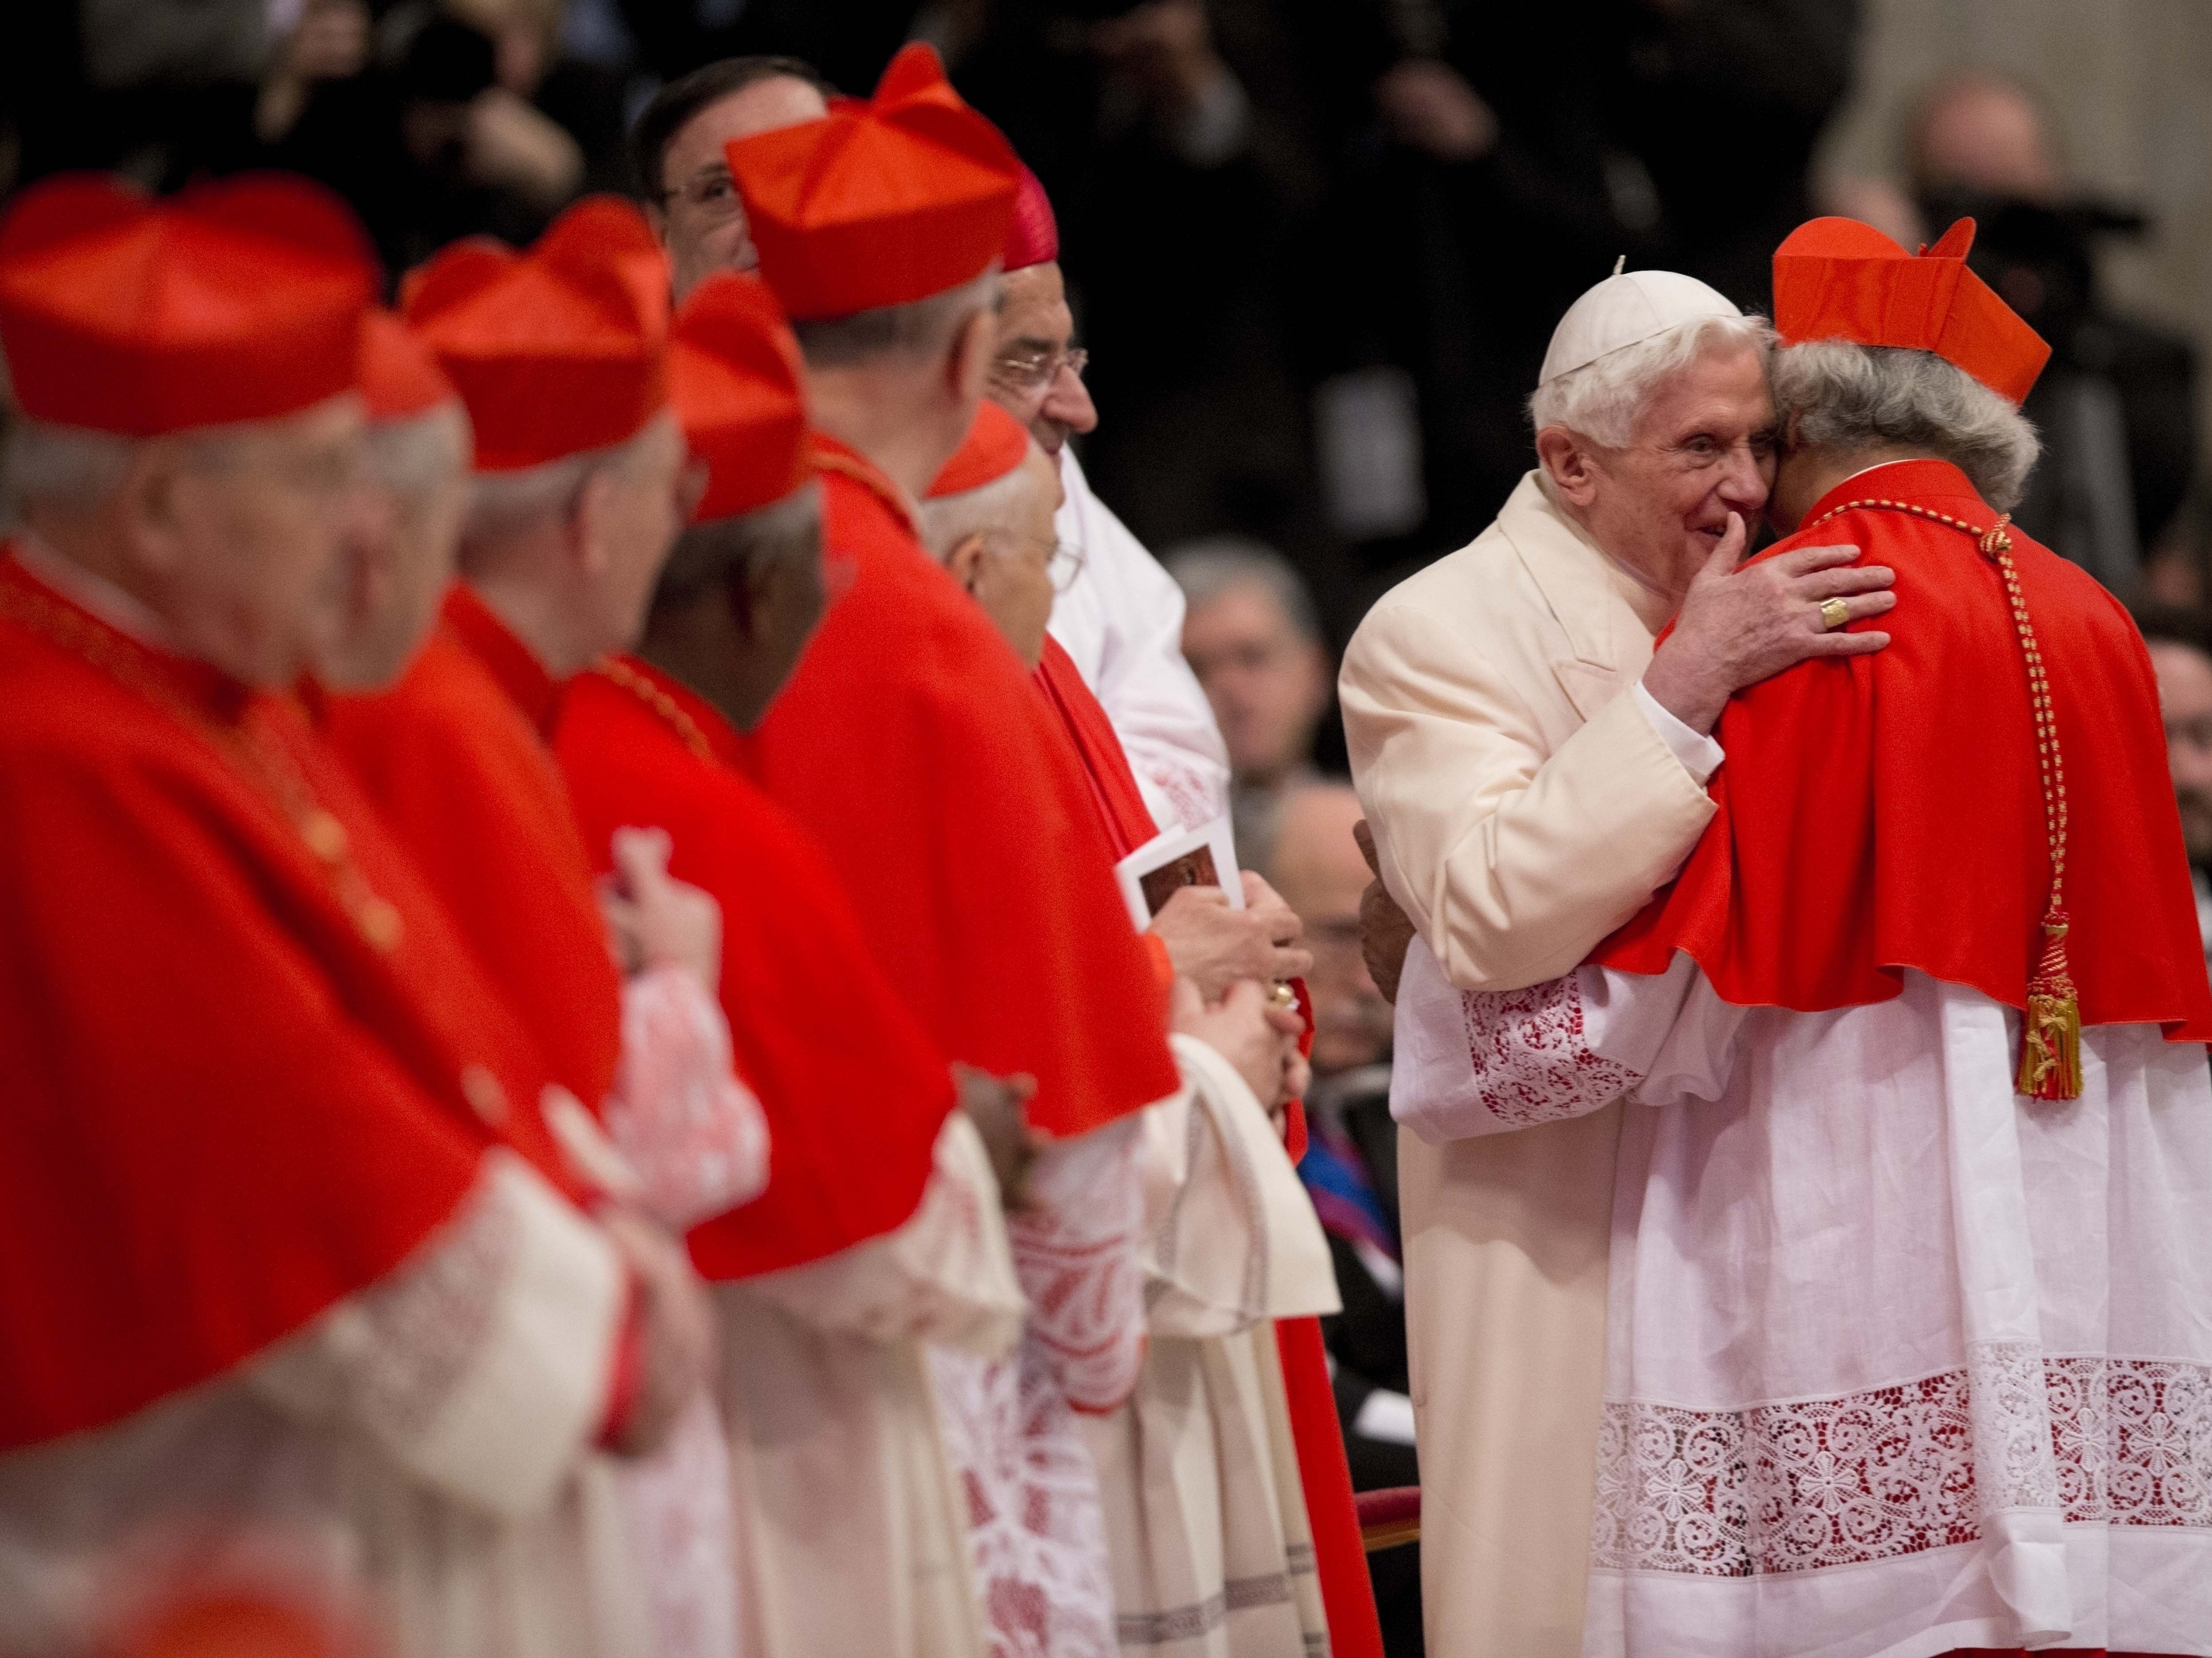 Tale Of Two Popes: Francis, Benedict Appear Together In Public